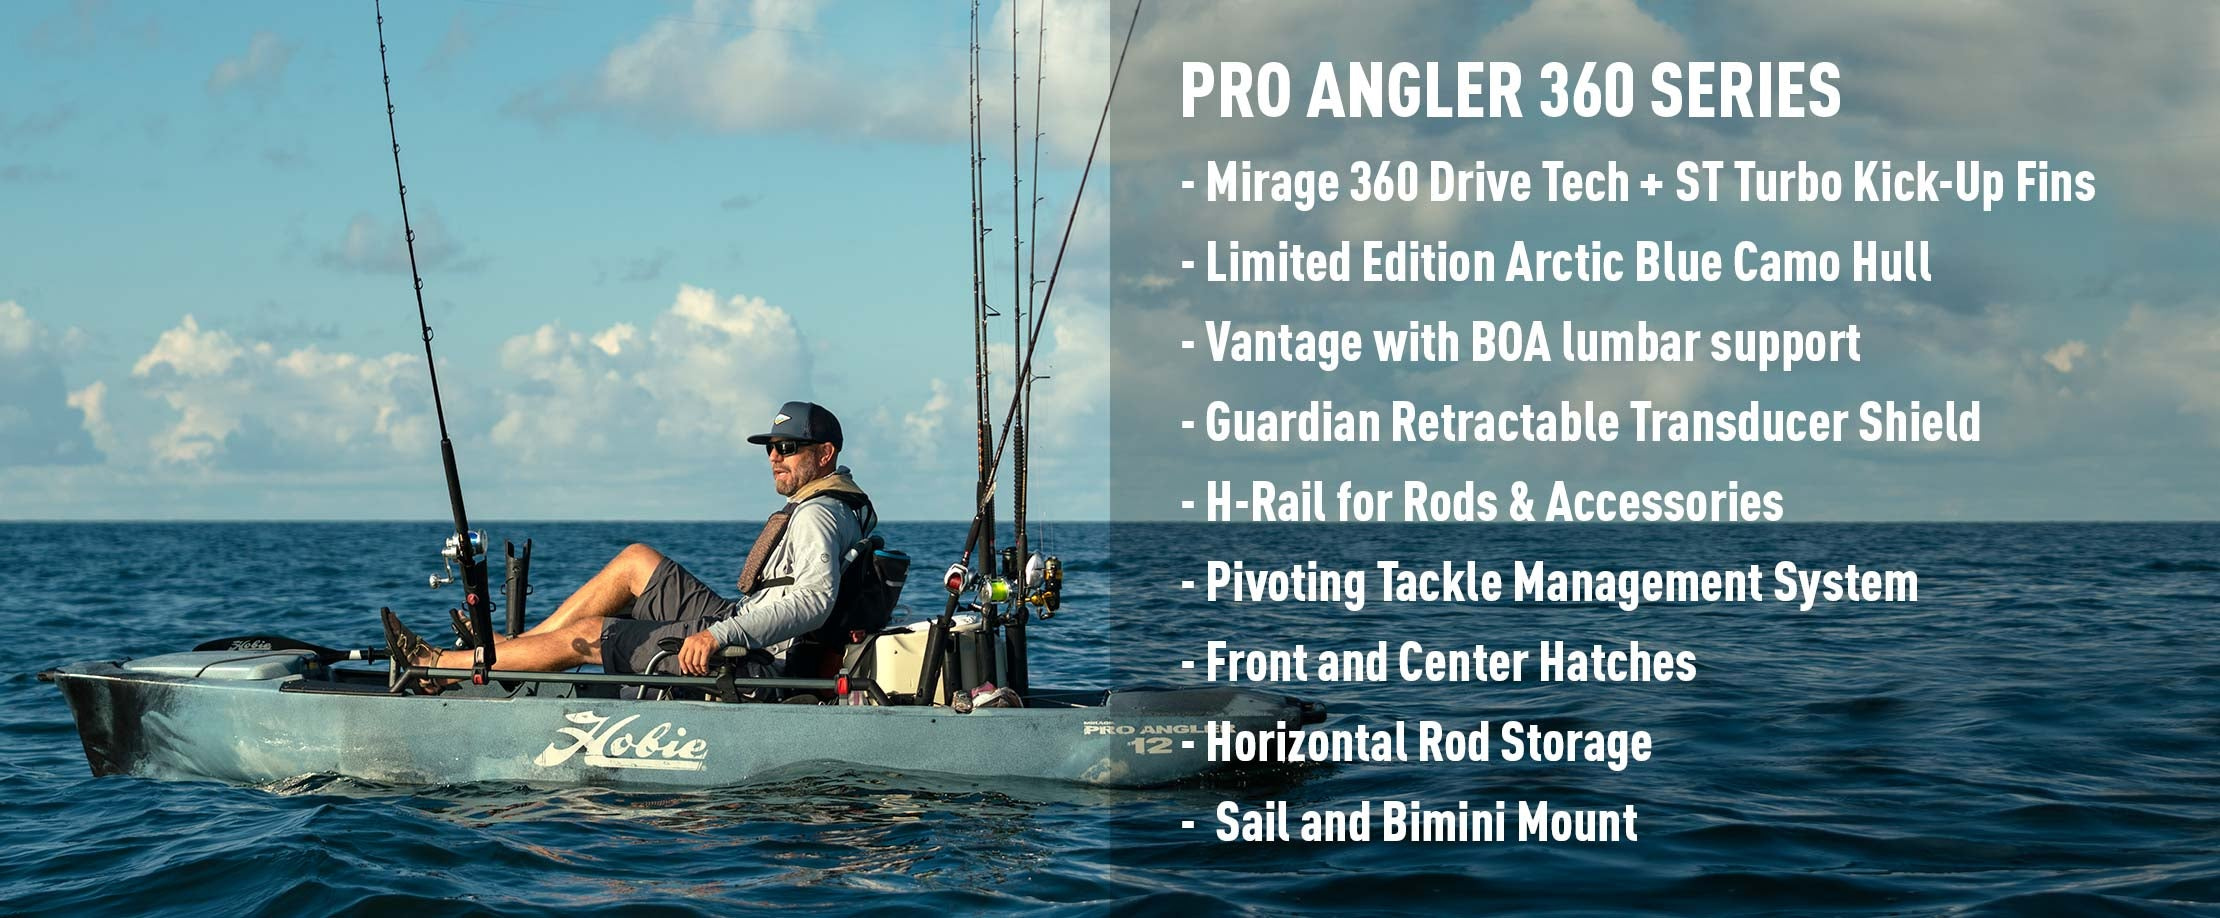 HOBIE-PRO-ANGLER-WITH-360-DRIVE